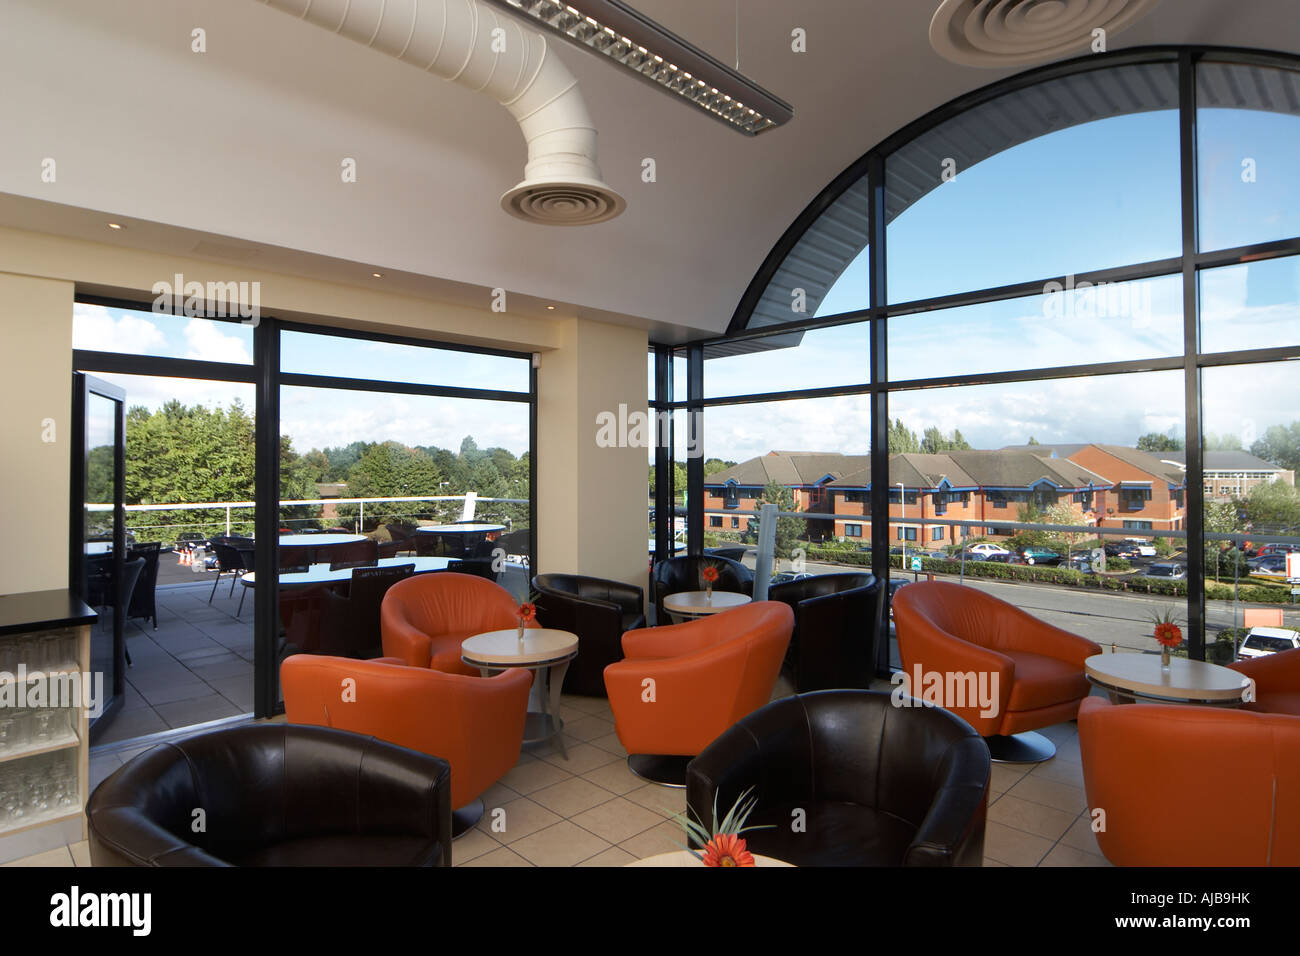 Seating coffee area in modern office building for staff with ...